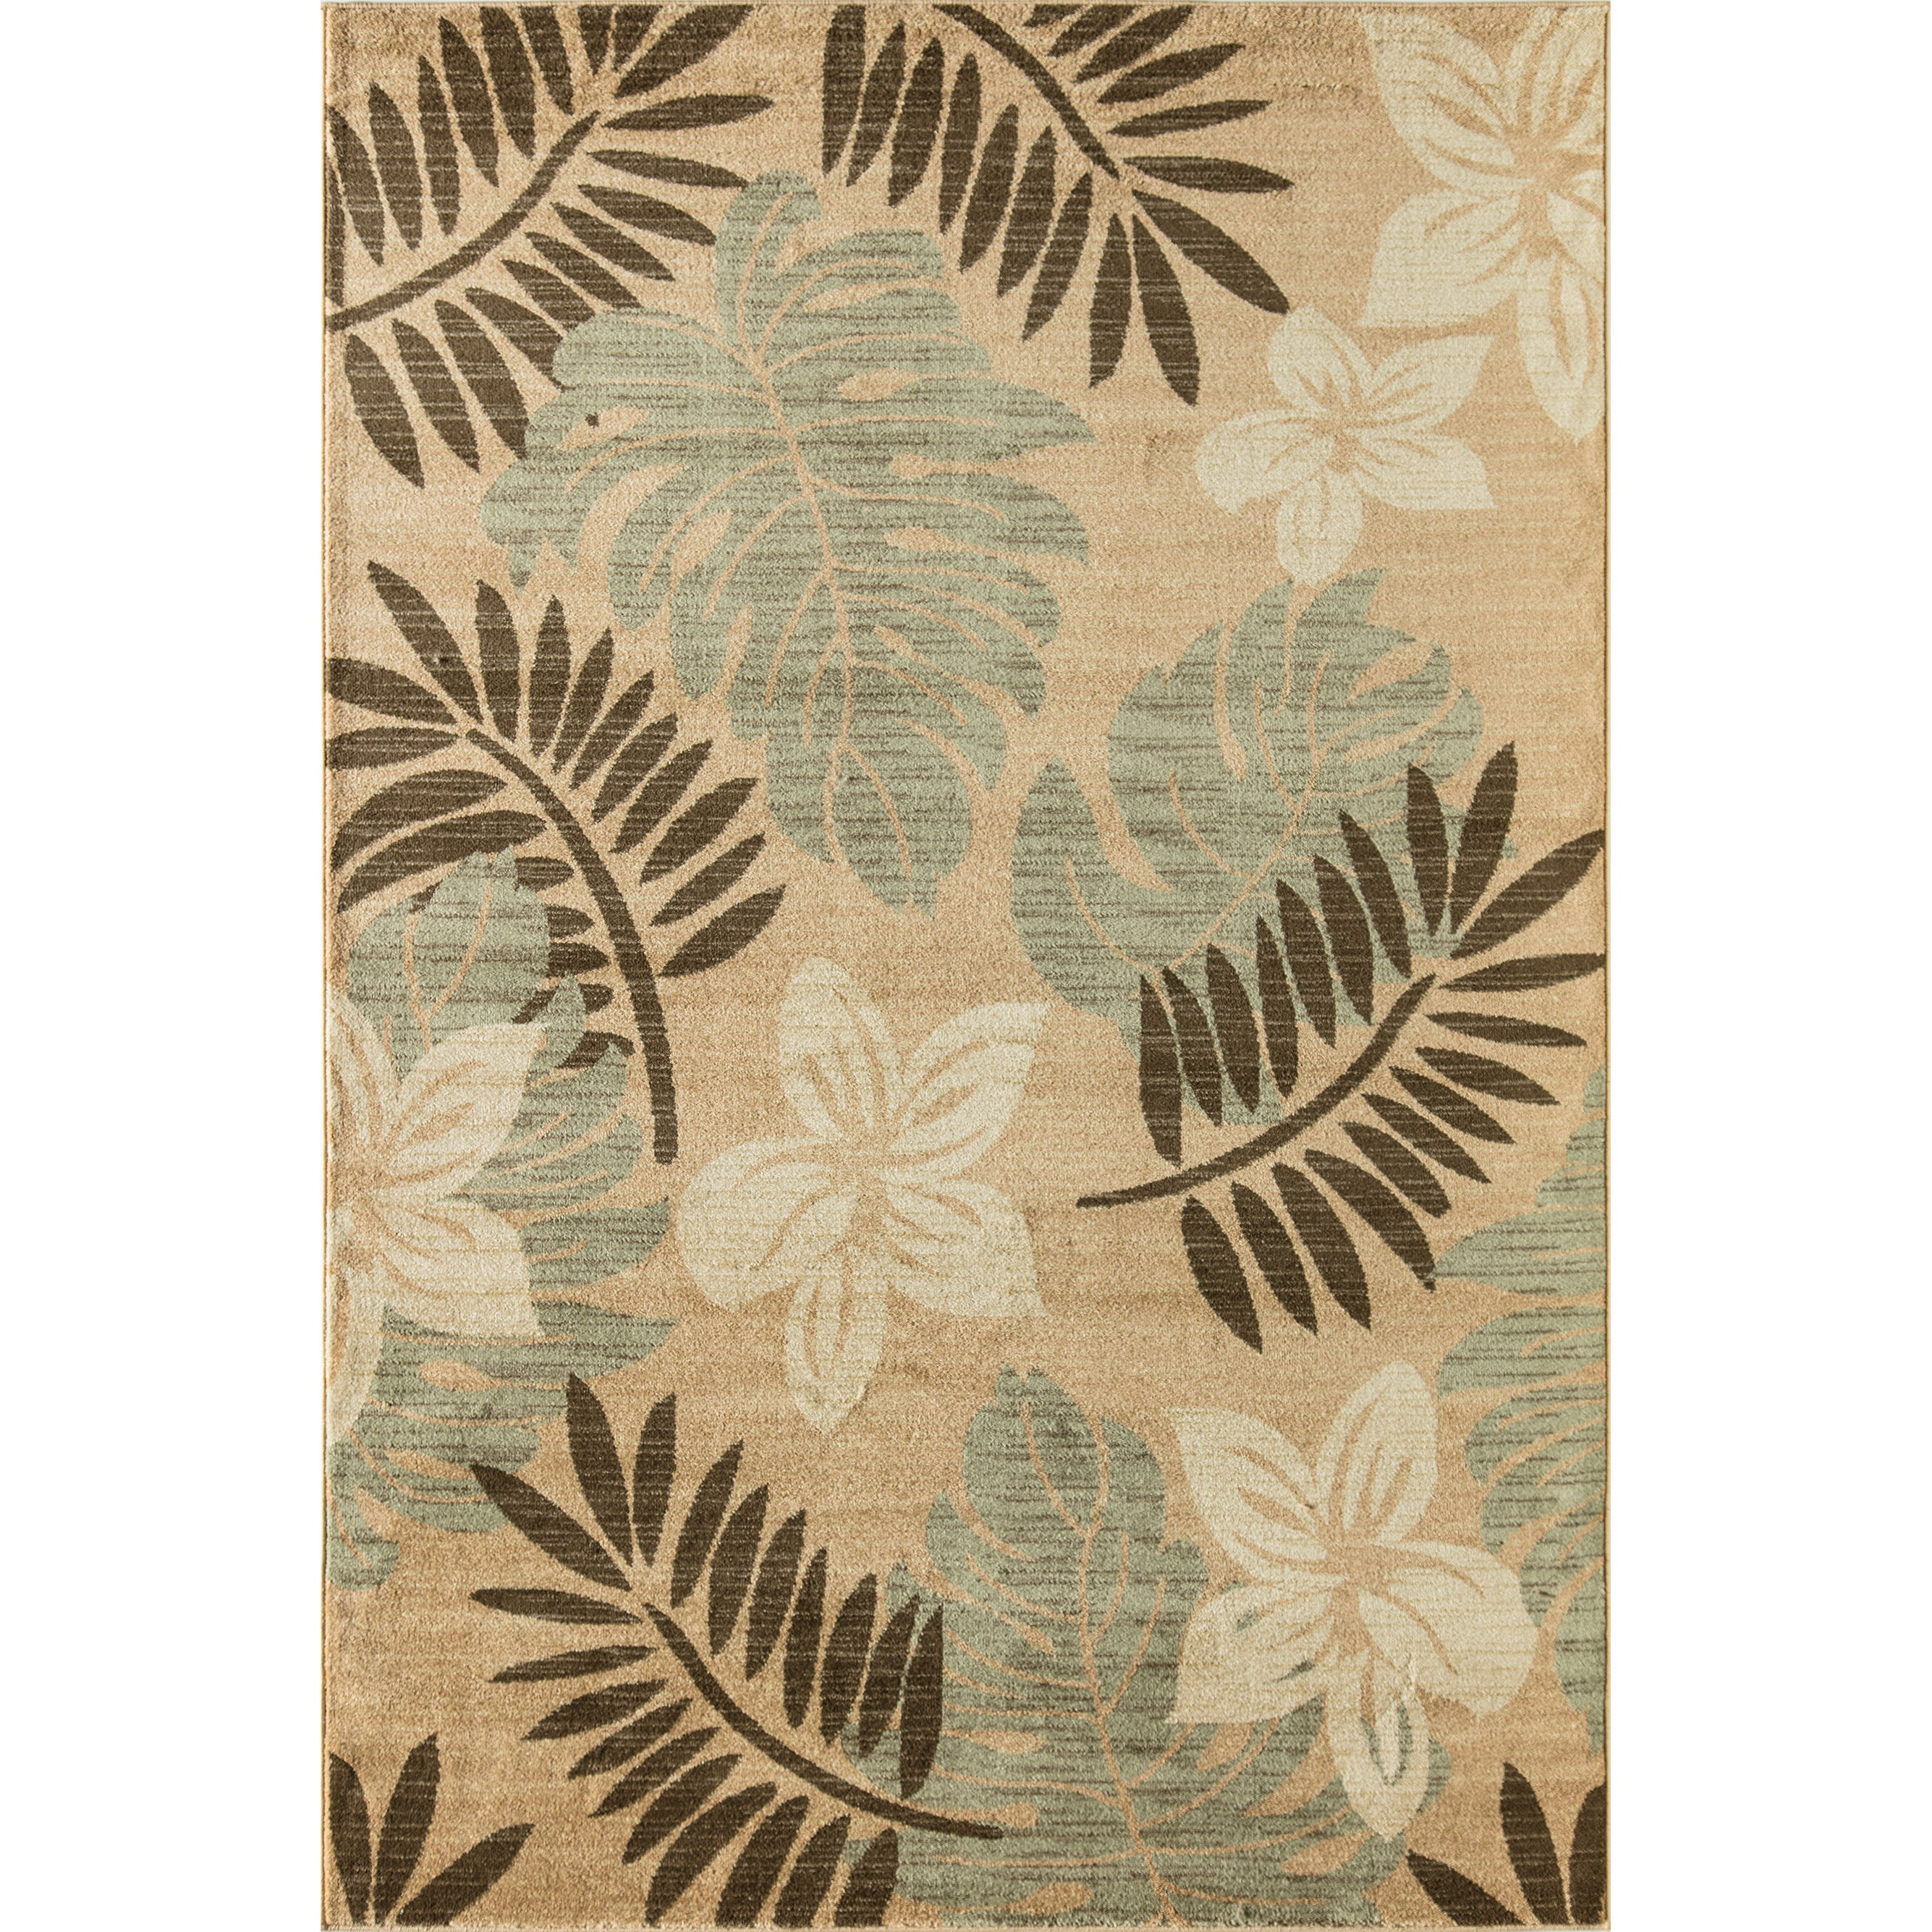 Woven Accents Flourishing Flowers Floral Area Rug (63 x 9...